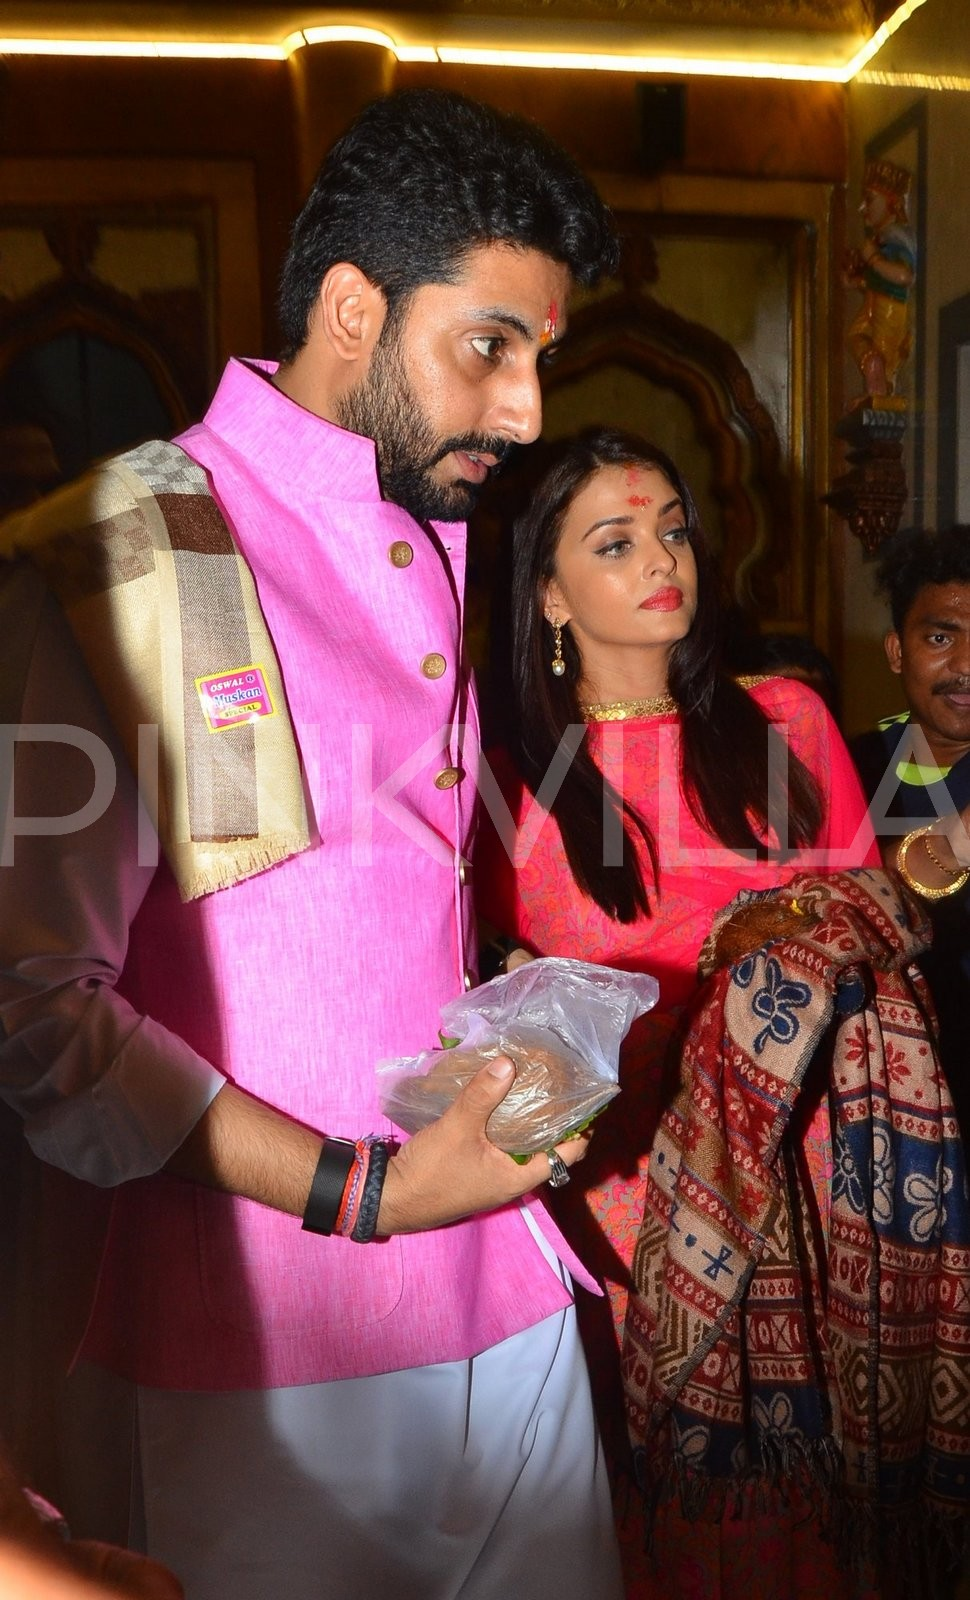 These pictures of Aishwarya and Abhishek performing pooja at a ...